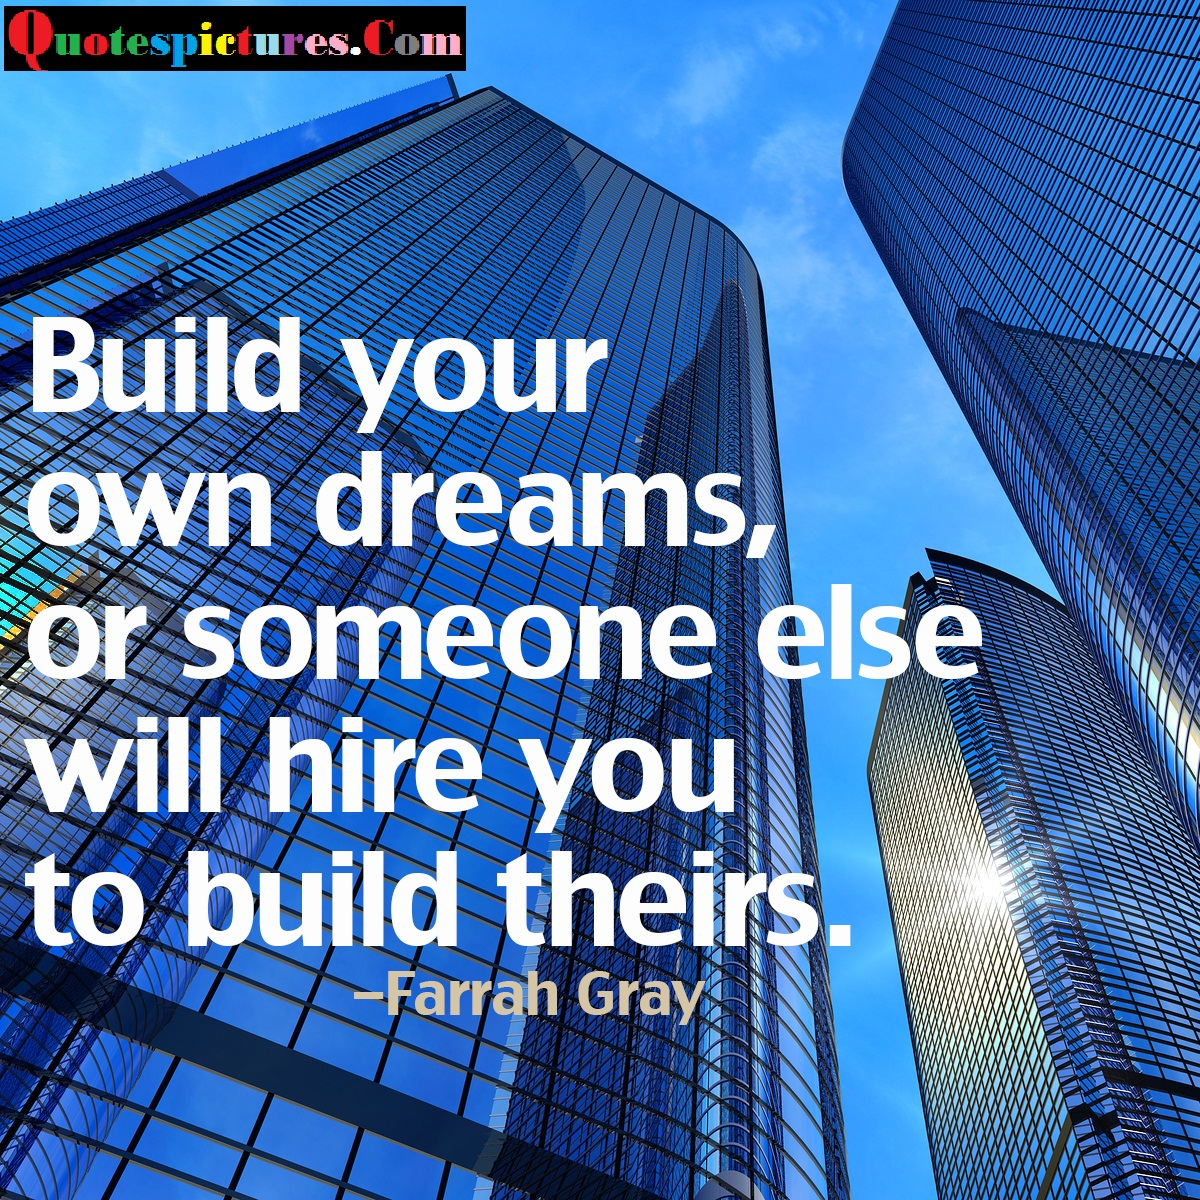 Buisness Quotes - Build Your Own Dreams By Farrah Gray